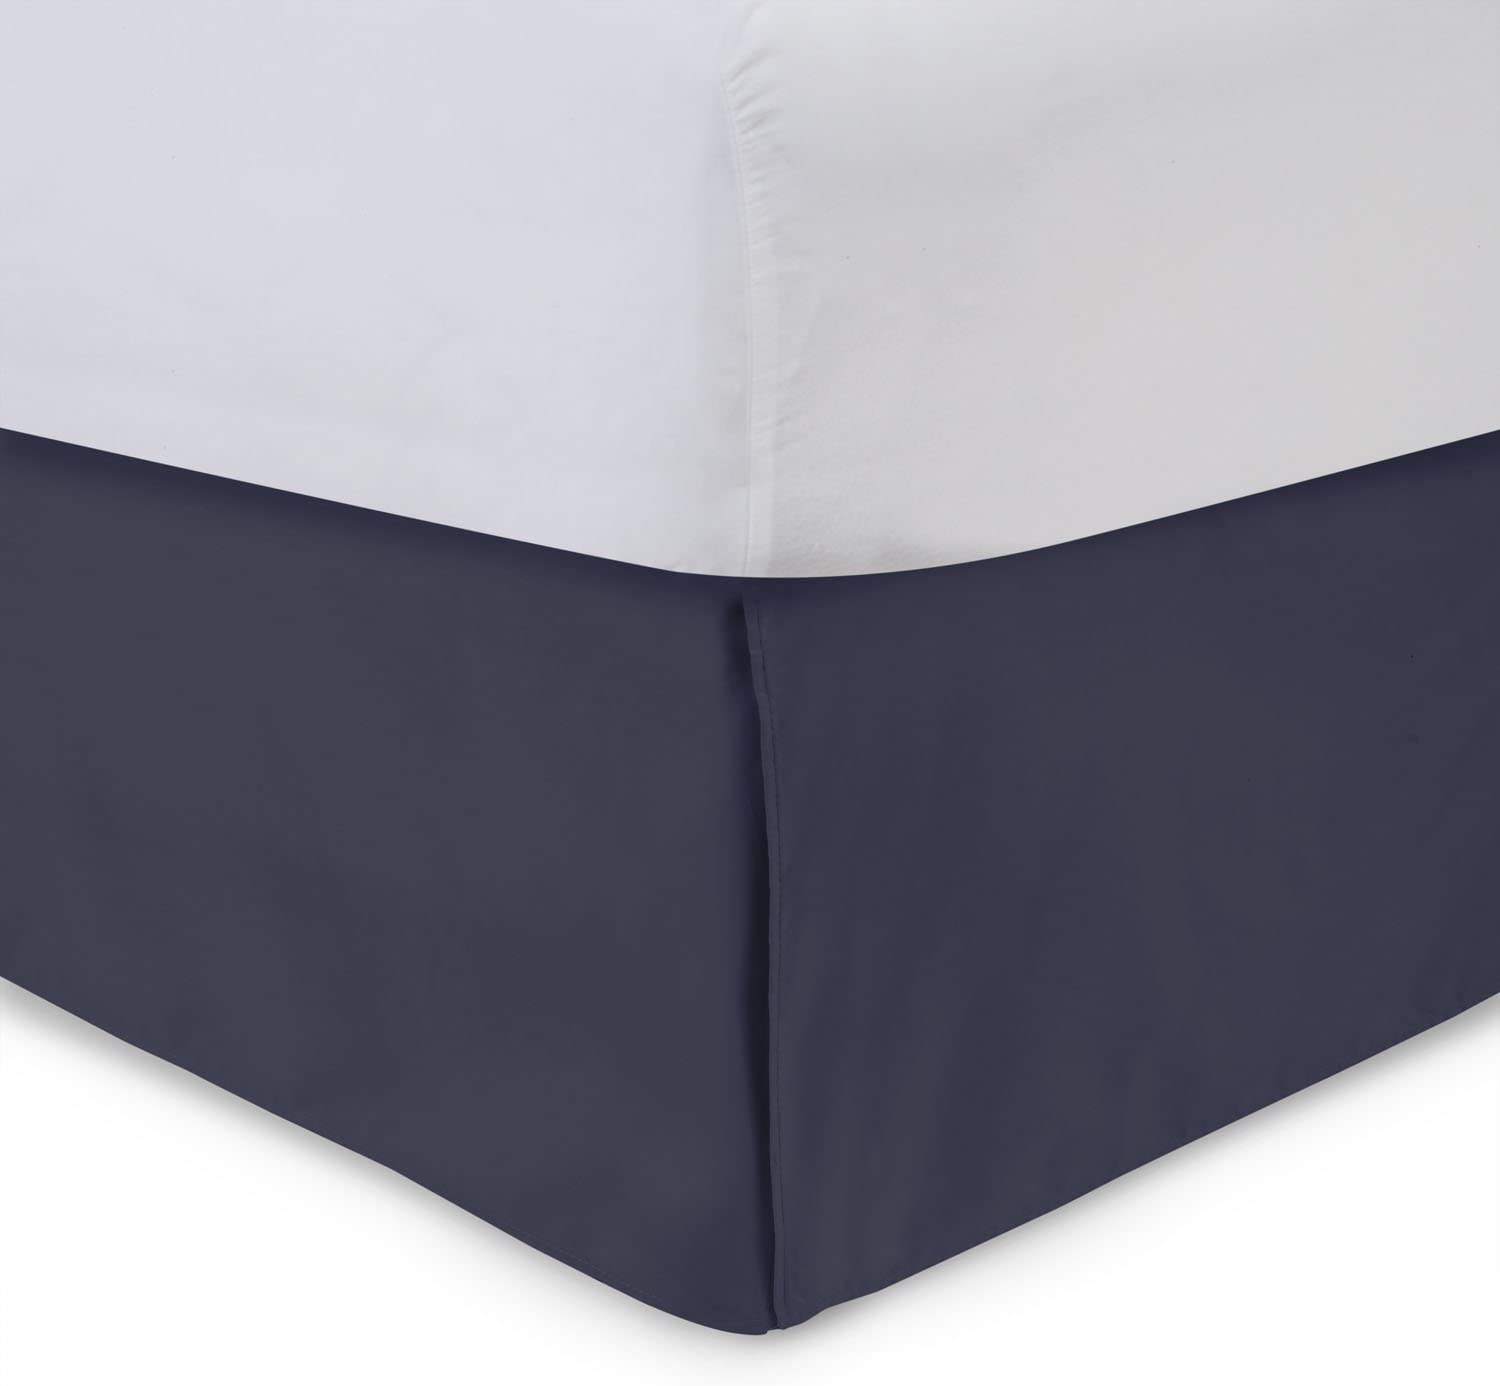 Tailored Bed Oakland Mall Skirt - Queen 18 Cotton discount Blend inch Drop Be Navy